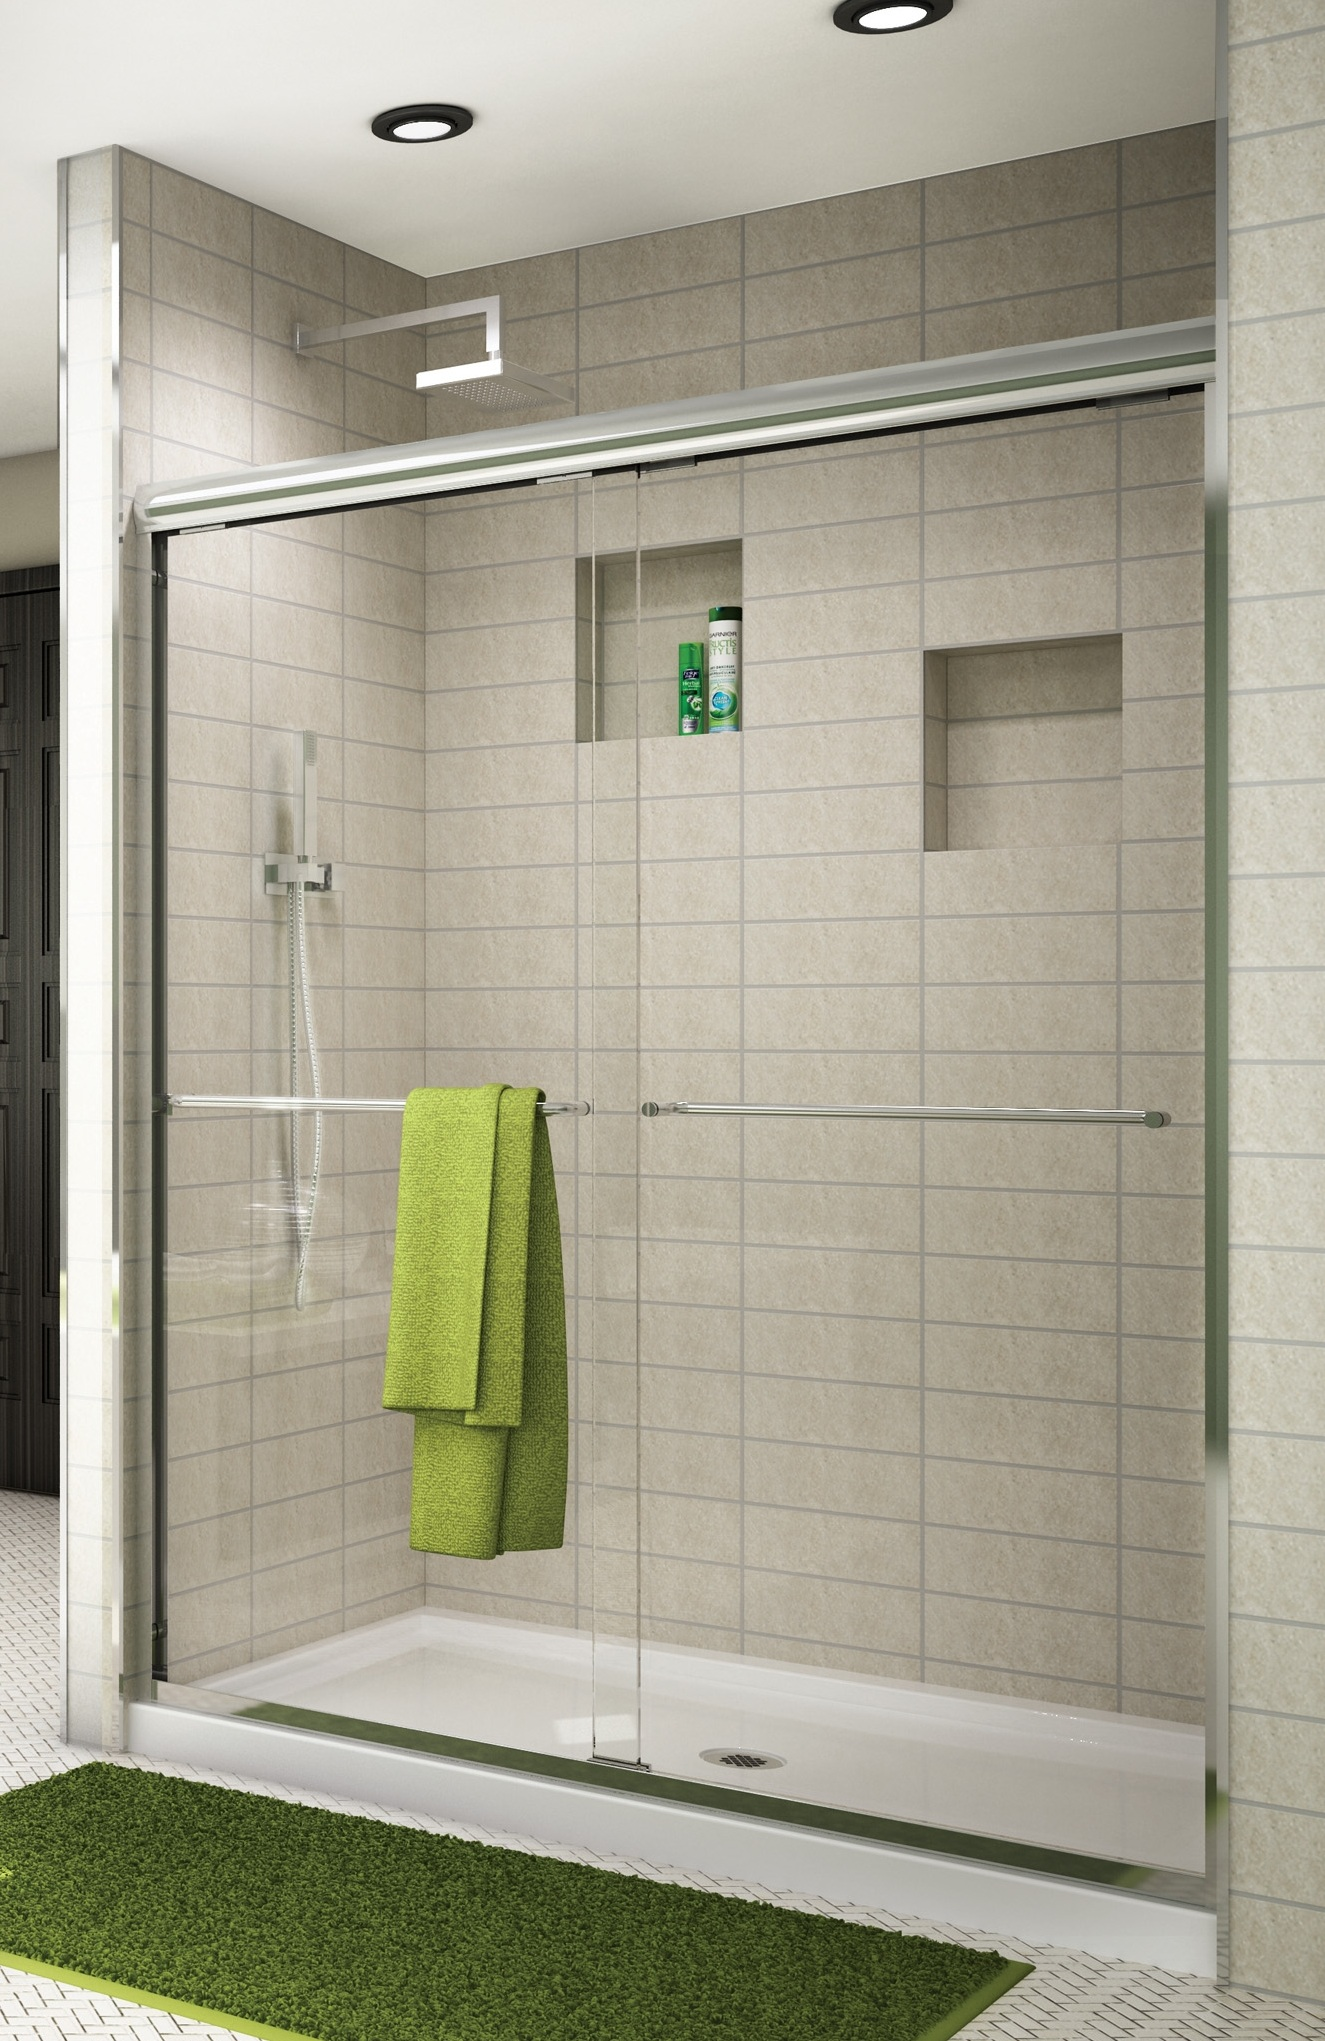 Shower Door of Canada Inc.: Toronto Manufacturer and Installer of ...